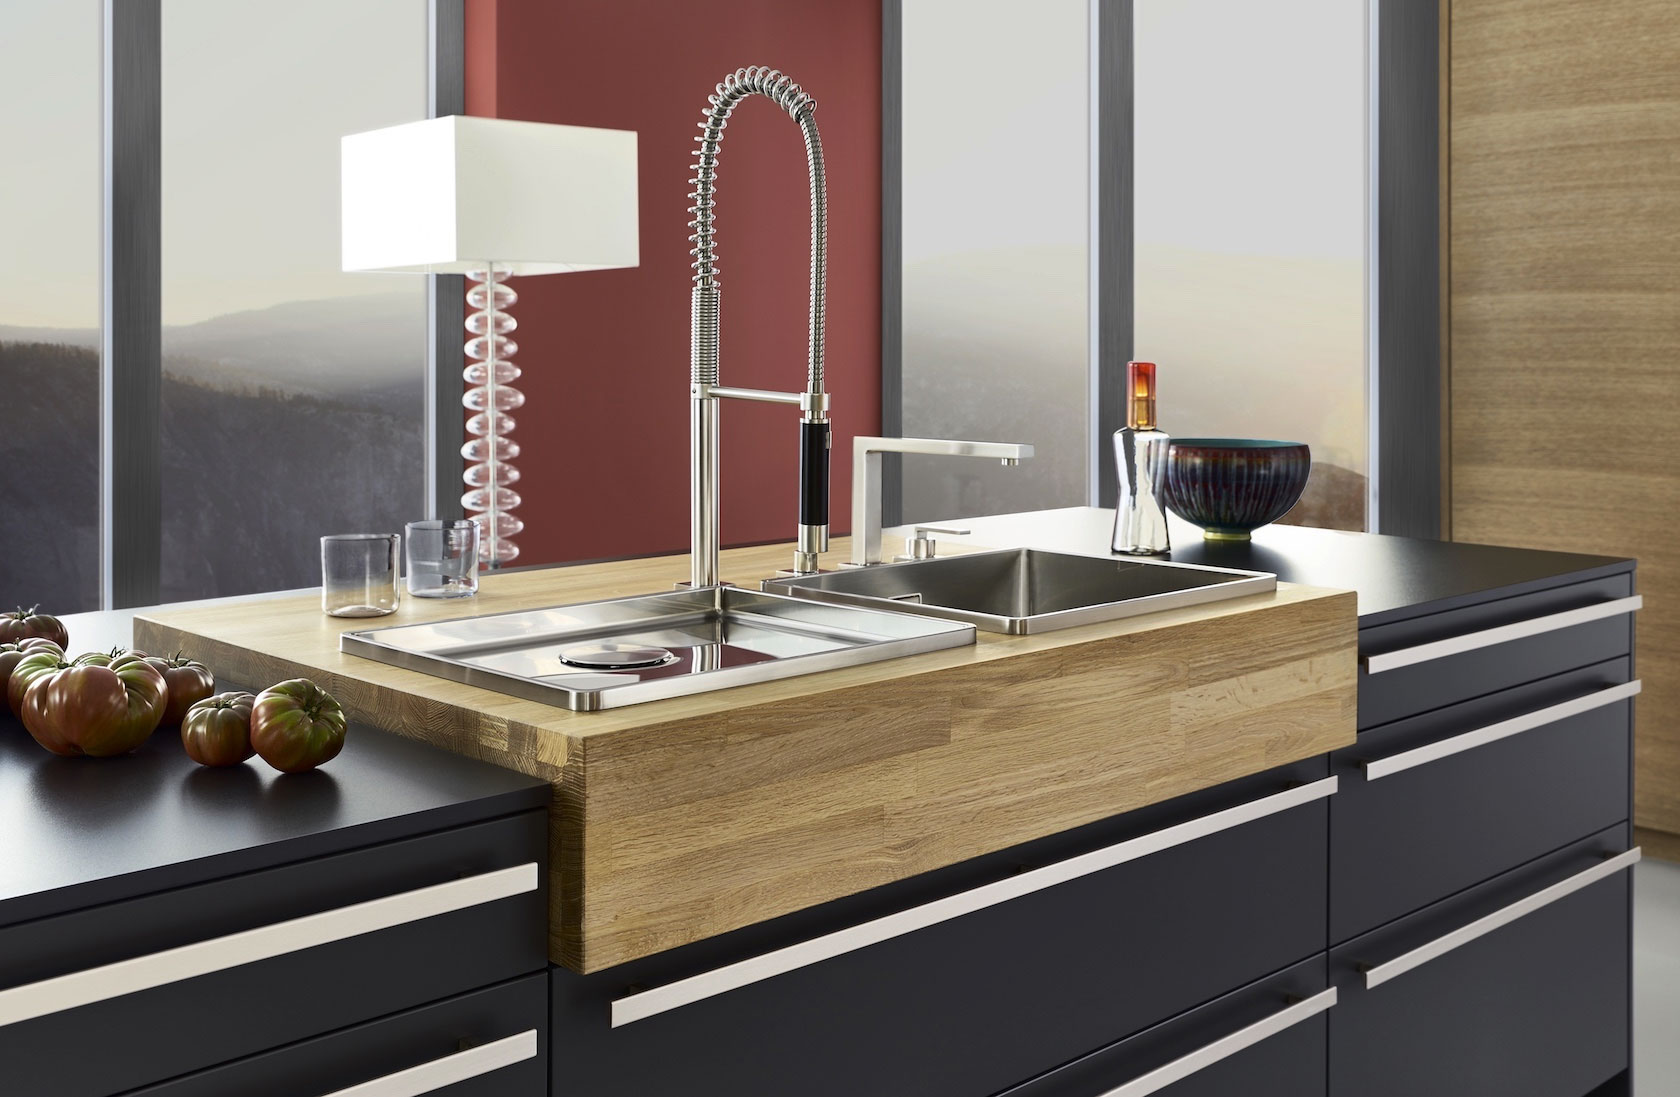 fitted kitchen Tap